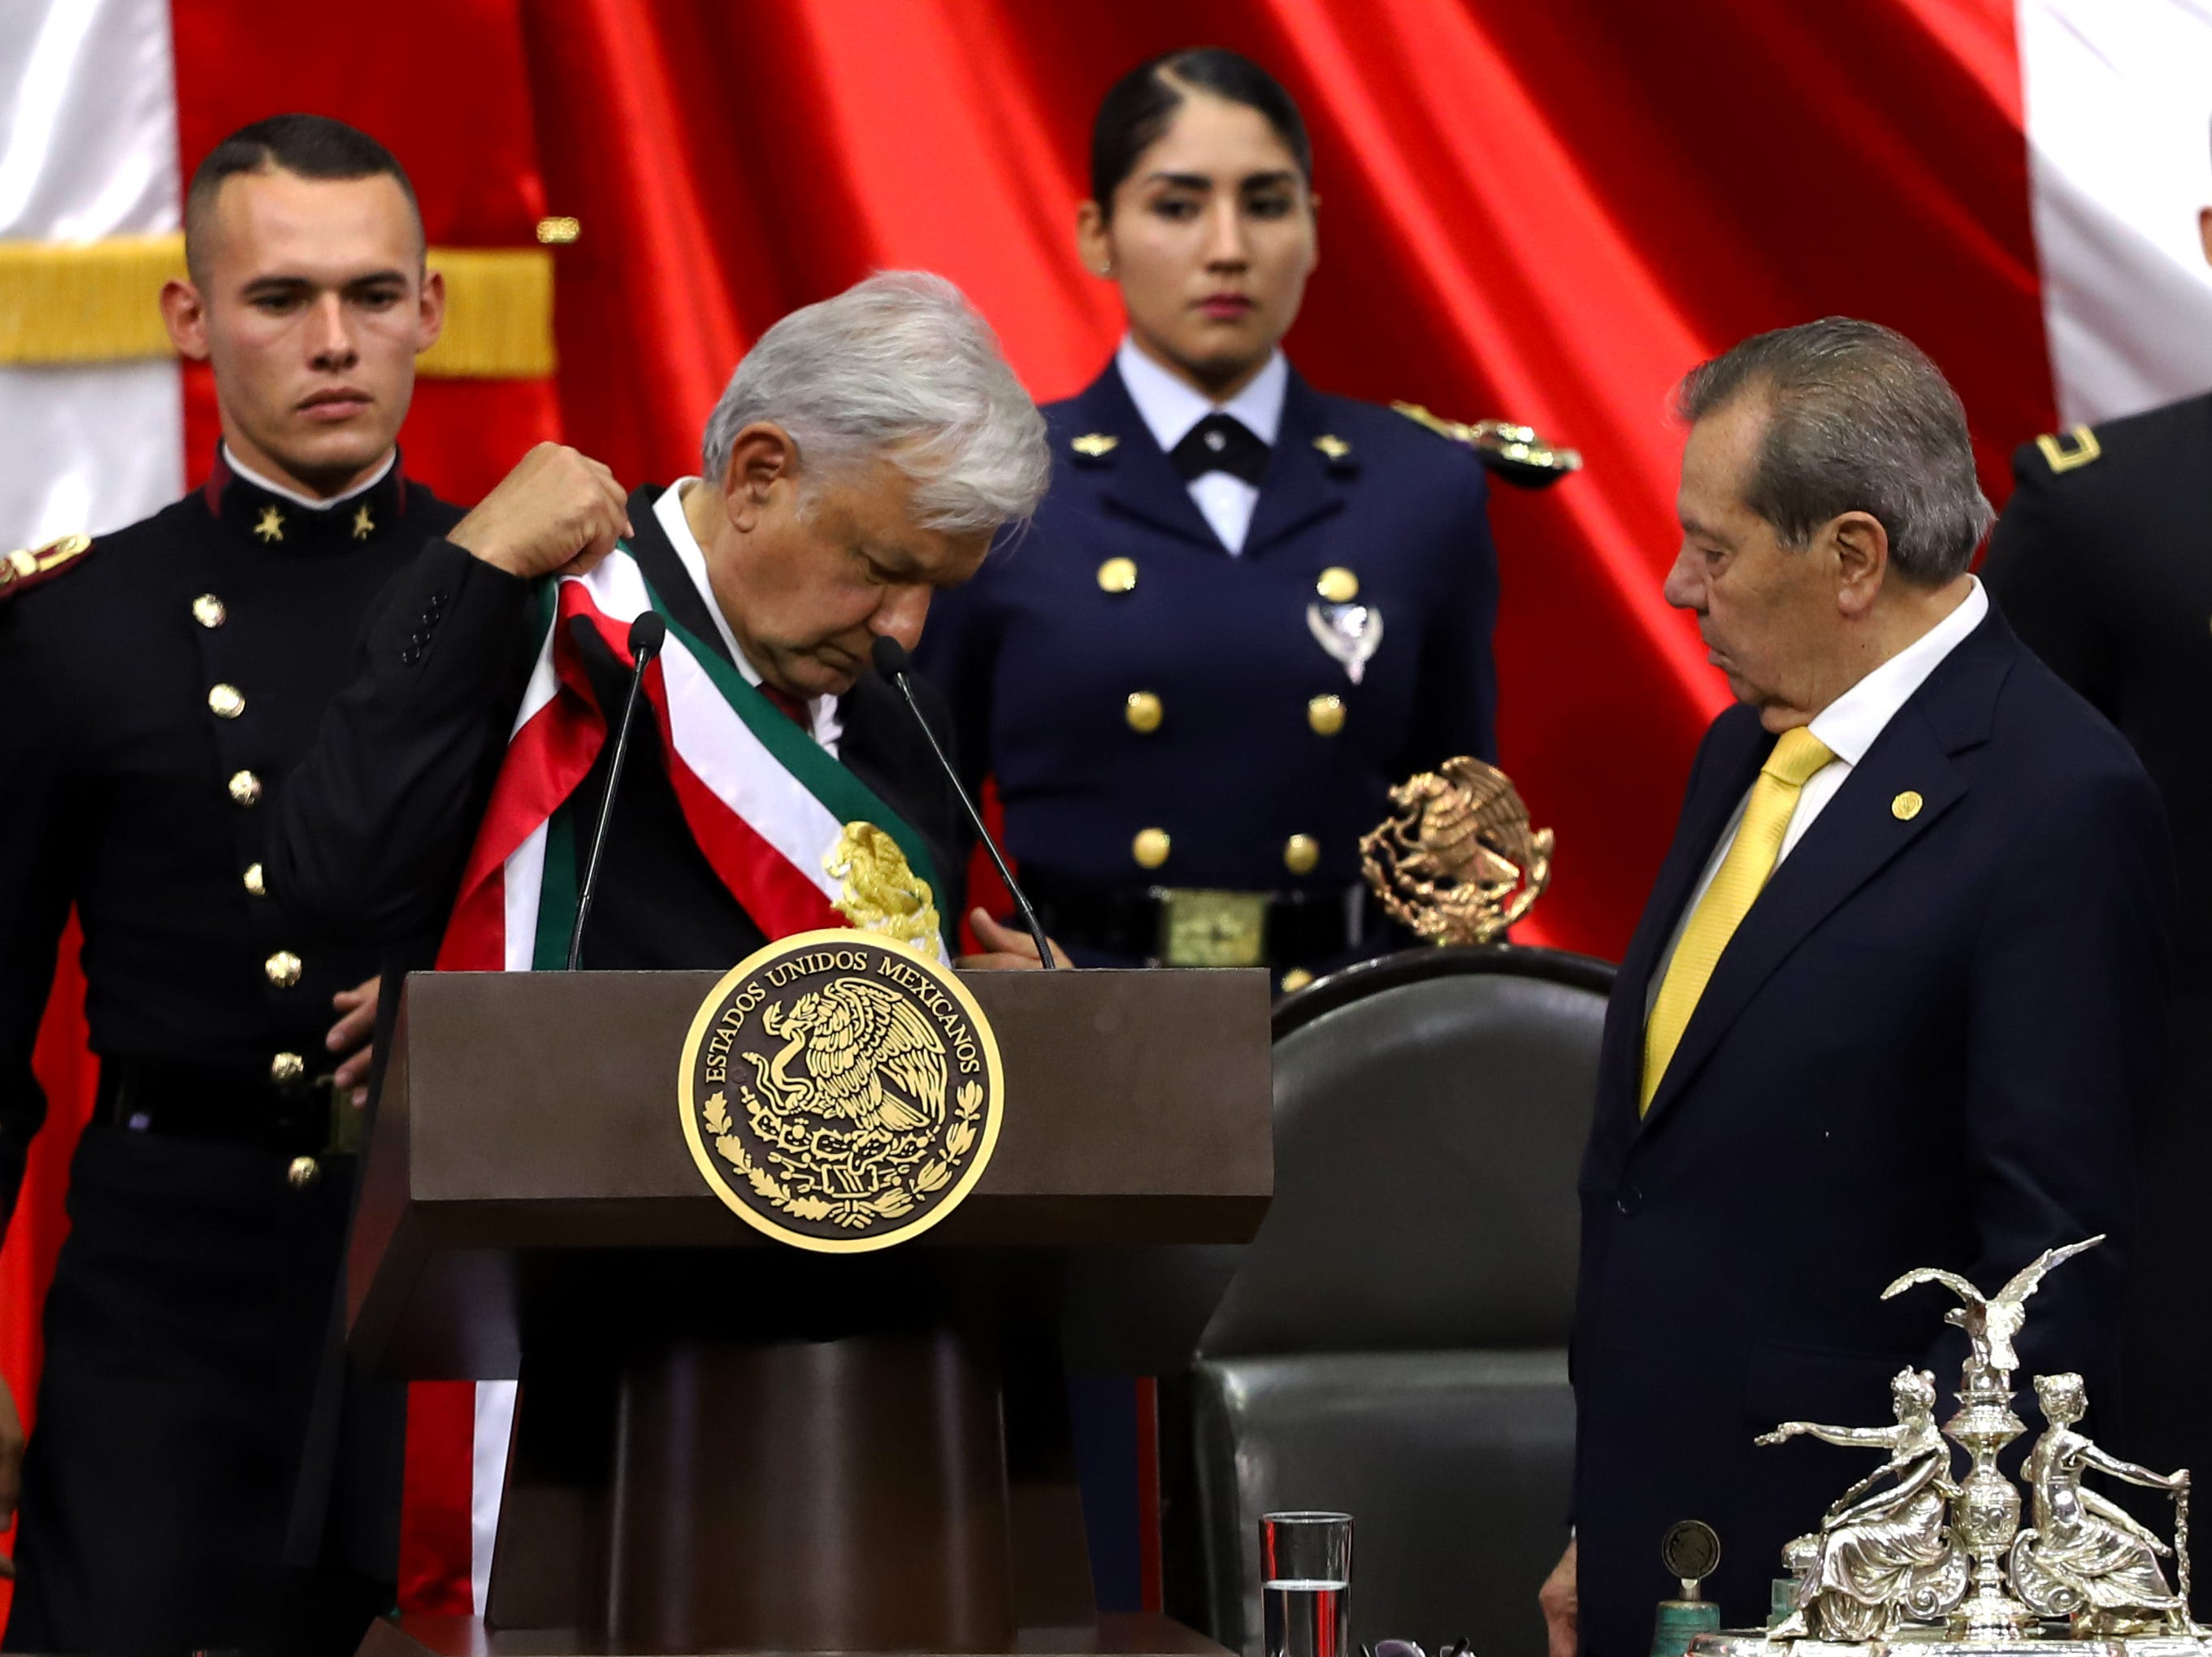 MEXICO CITY, MEXICO - DECEMBER 01: Newly appointed Mexican President Andres Manuel Lopez Obrador receives the presidential sash from President of the Chamber of Deputies Porfirio Munoz Ledo (L) during the events of the Presidential Investiture as part of the 65th Mexico Presidential Inauguration at Congress of the Union on December 01, 2018 in Mexico City, Mexico. (Photo by Getty Images/Getty Images)